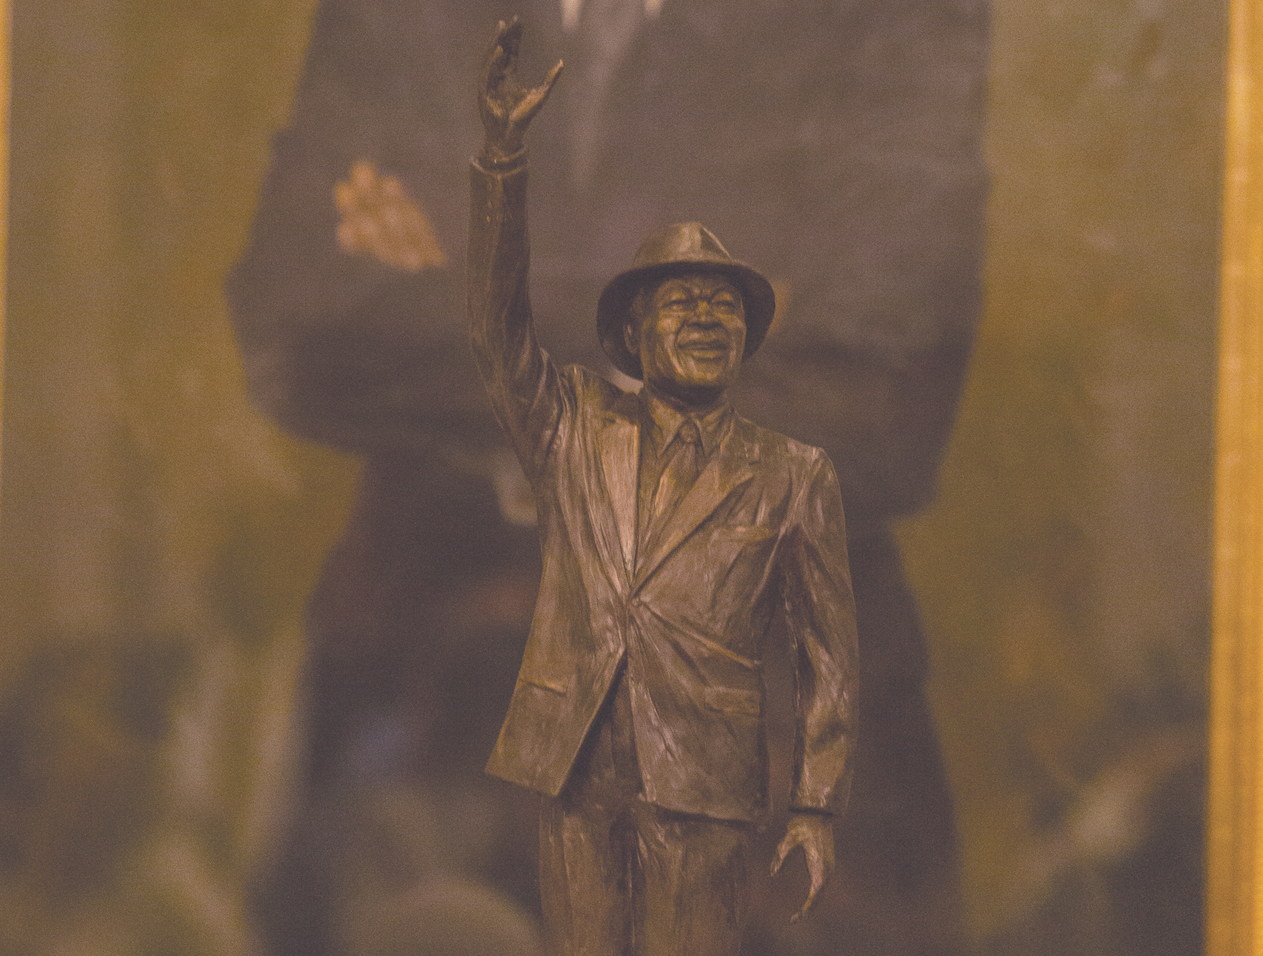 Photo of EDITORIAL: Barry in Bronze — A Fitting Reminder of His Love for Everyday People